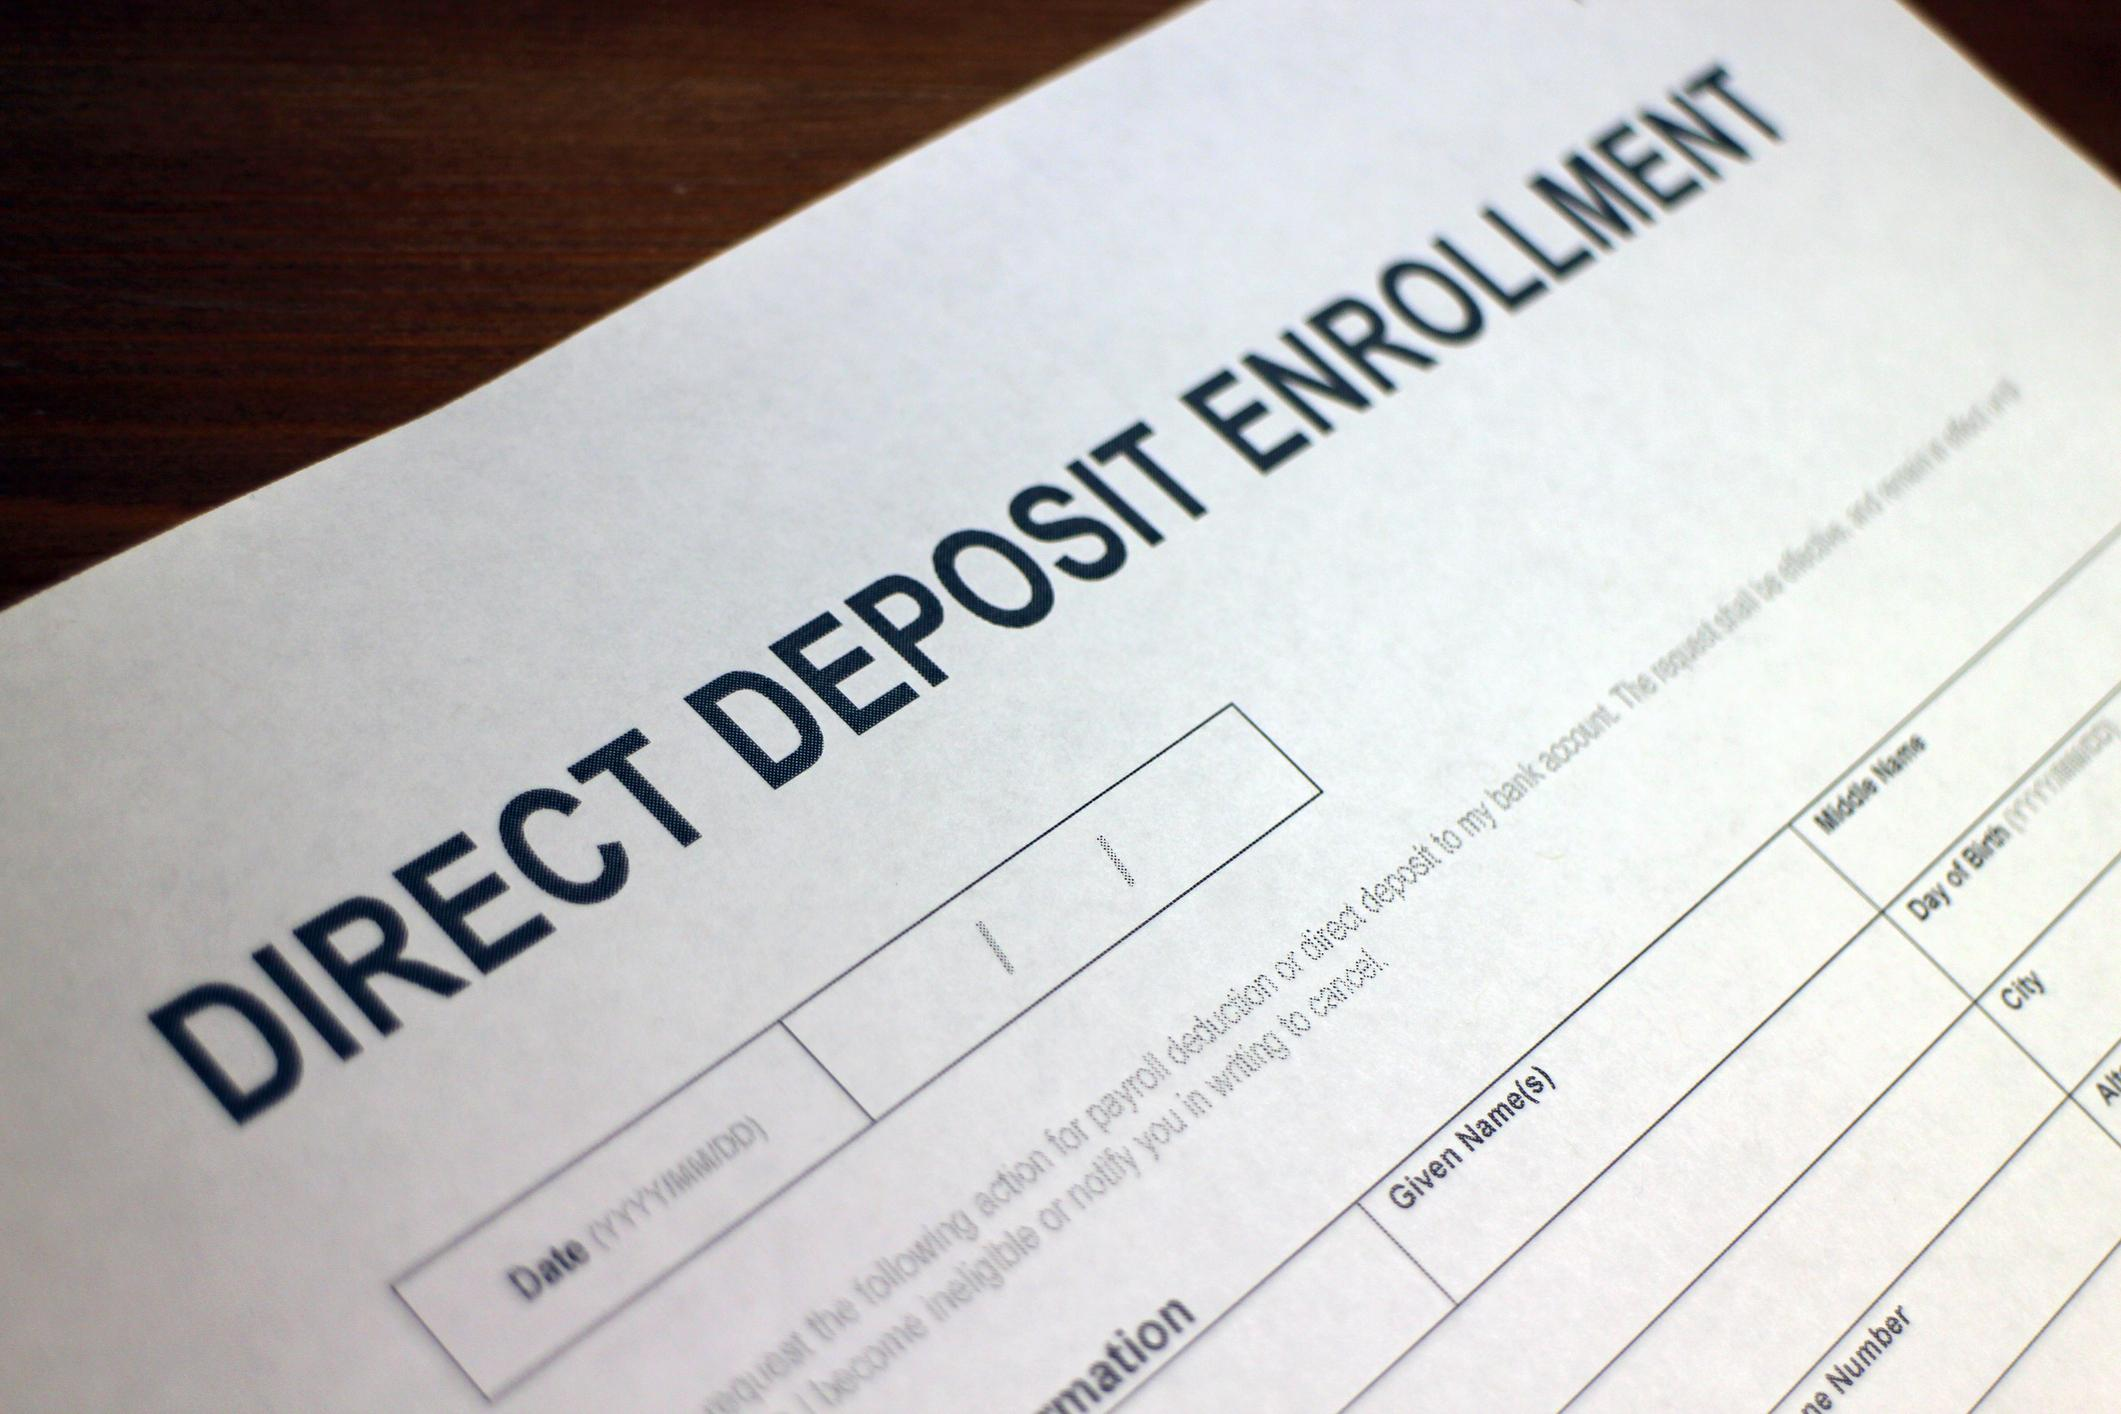 Direct Deposit Enrollment